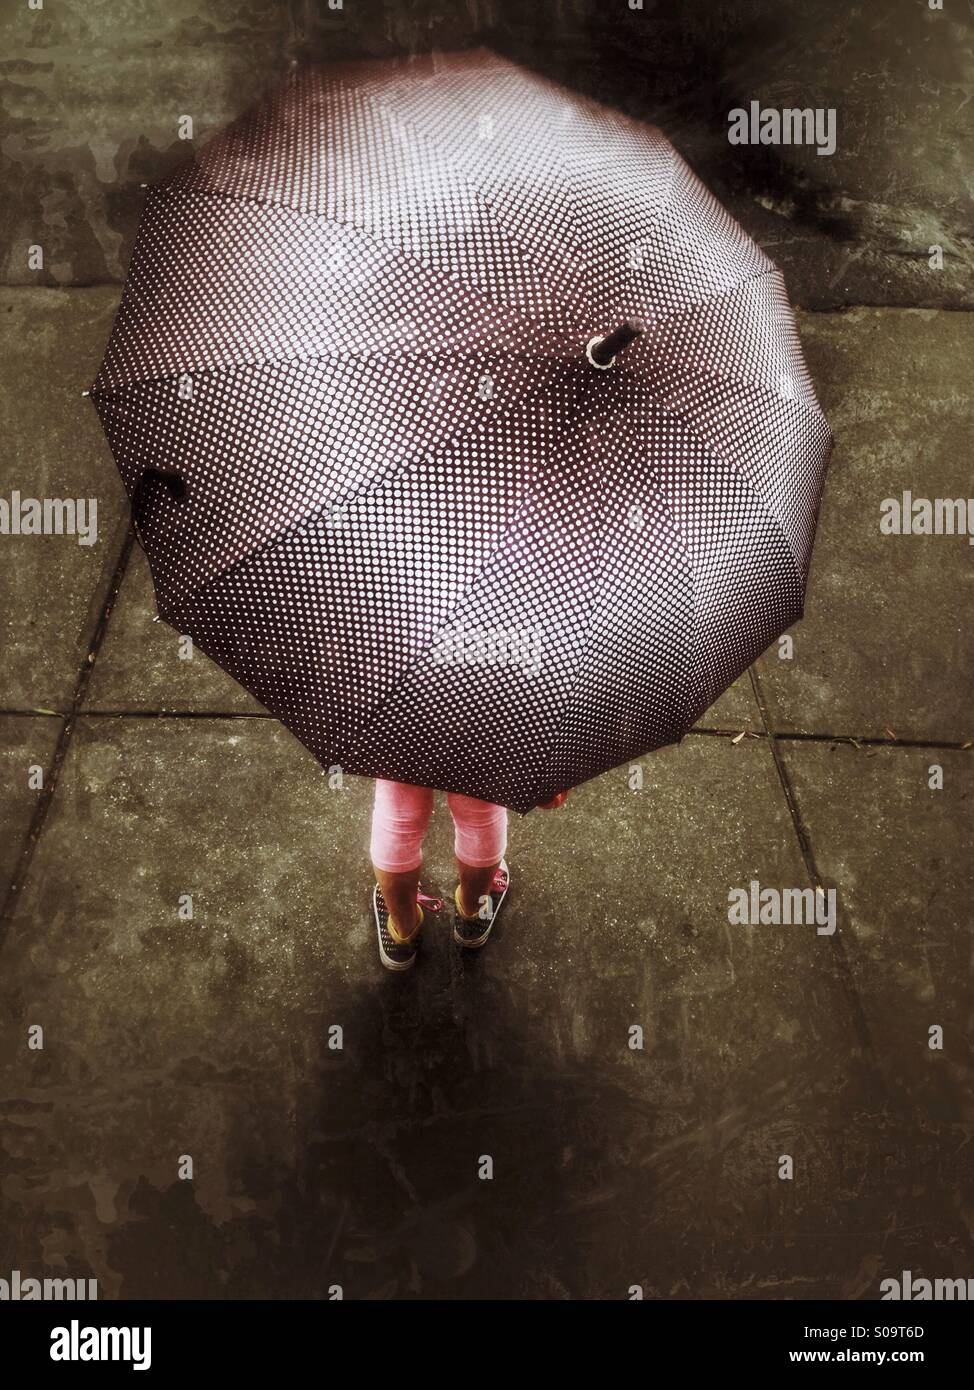 Little girl under an umbrella on a rainy day. - Stock Image